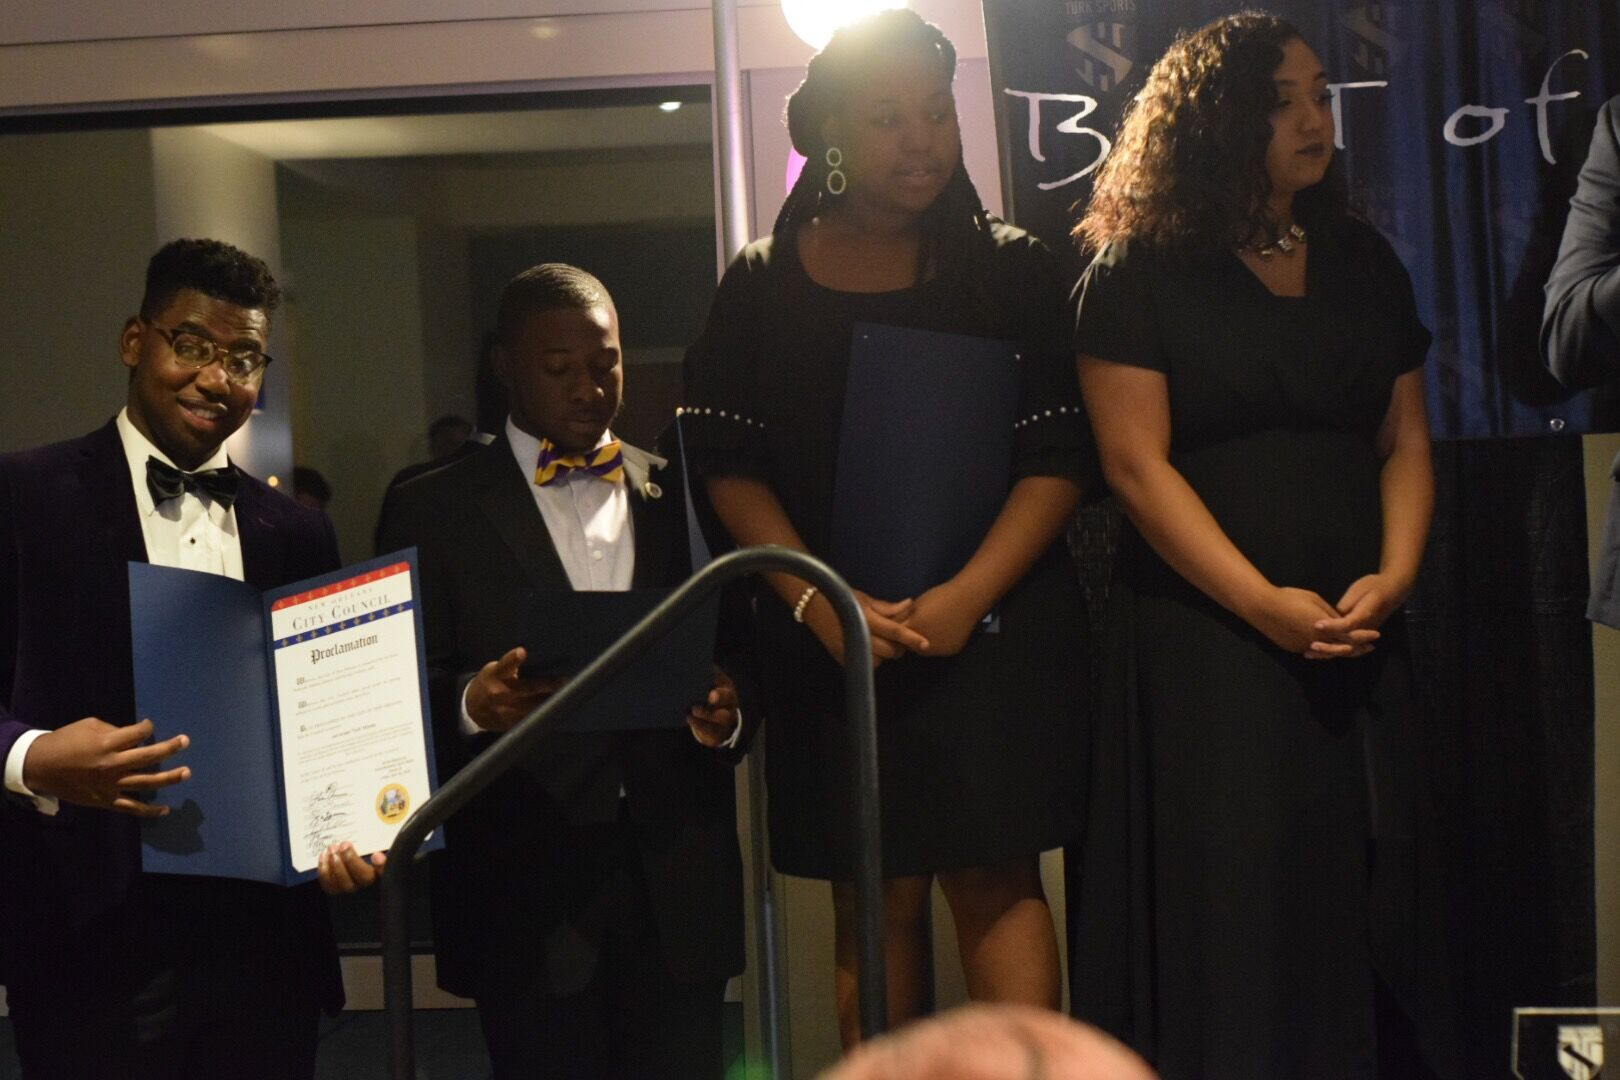 Turk's Team receive Proclamations from City of New Orleans Representative